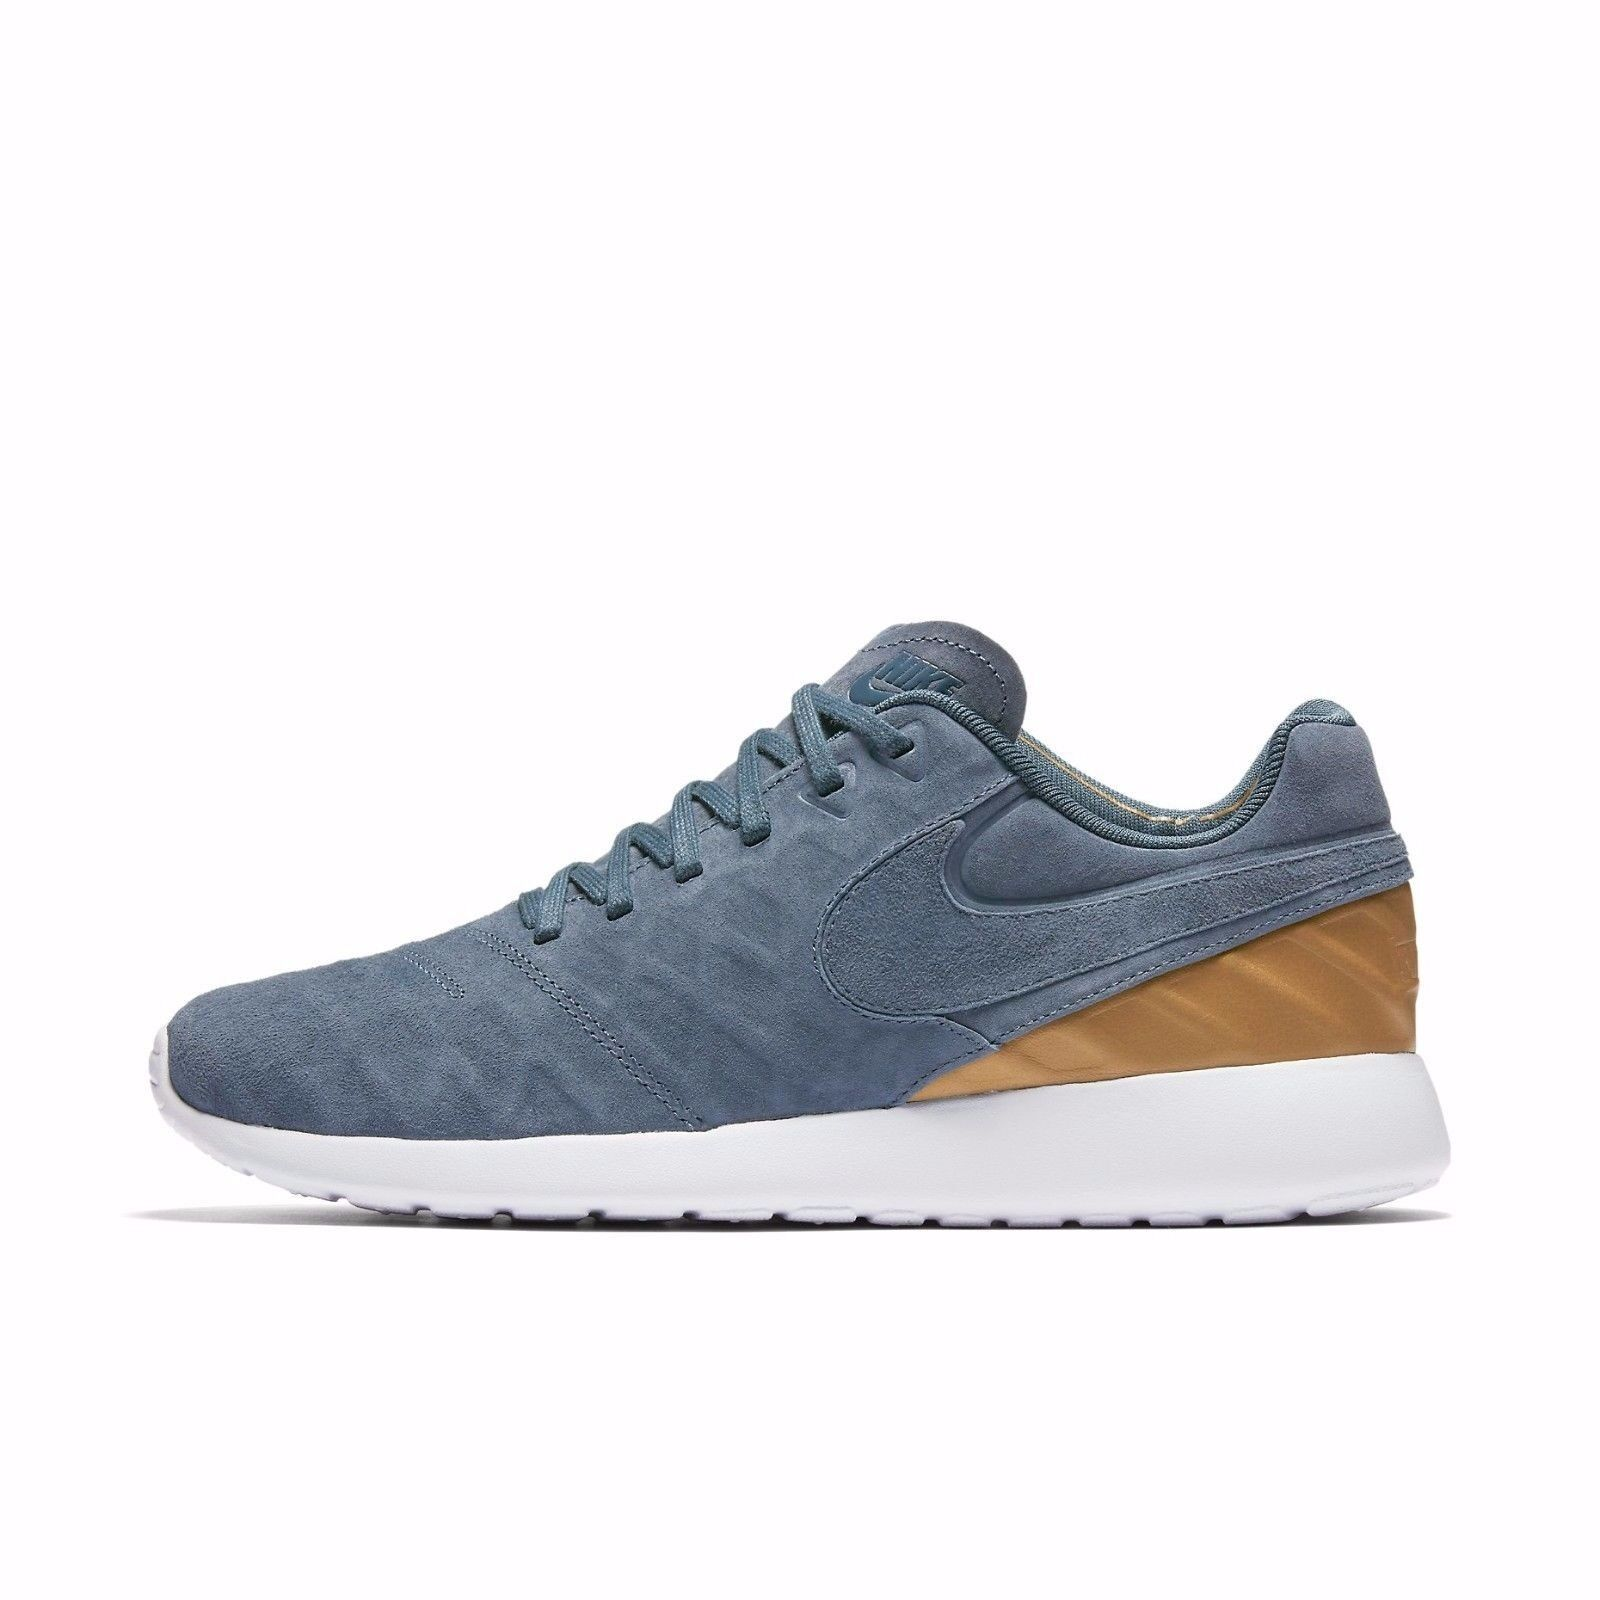 Nike Roshe Tiempo VI FC 852613-400 Blue Fox Brand New Price reduction NEW The most popular shoes for men and women